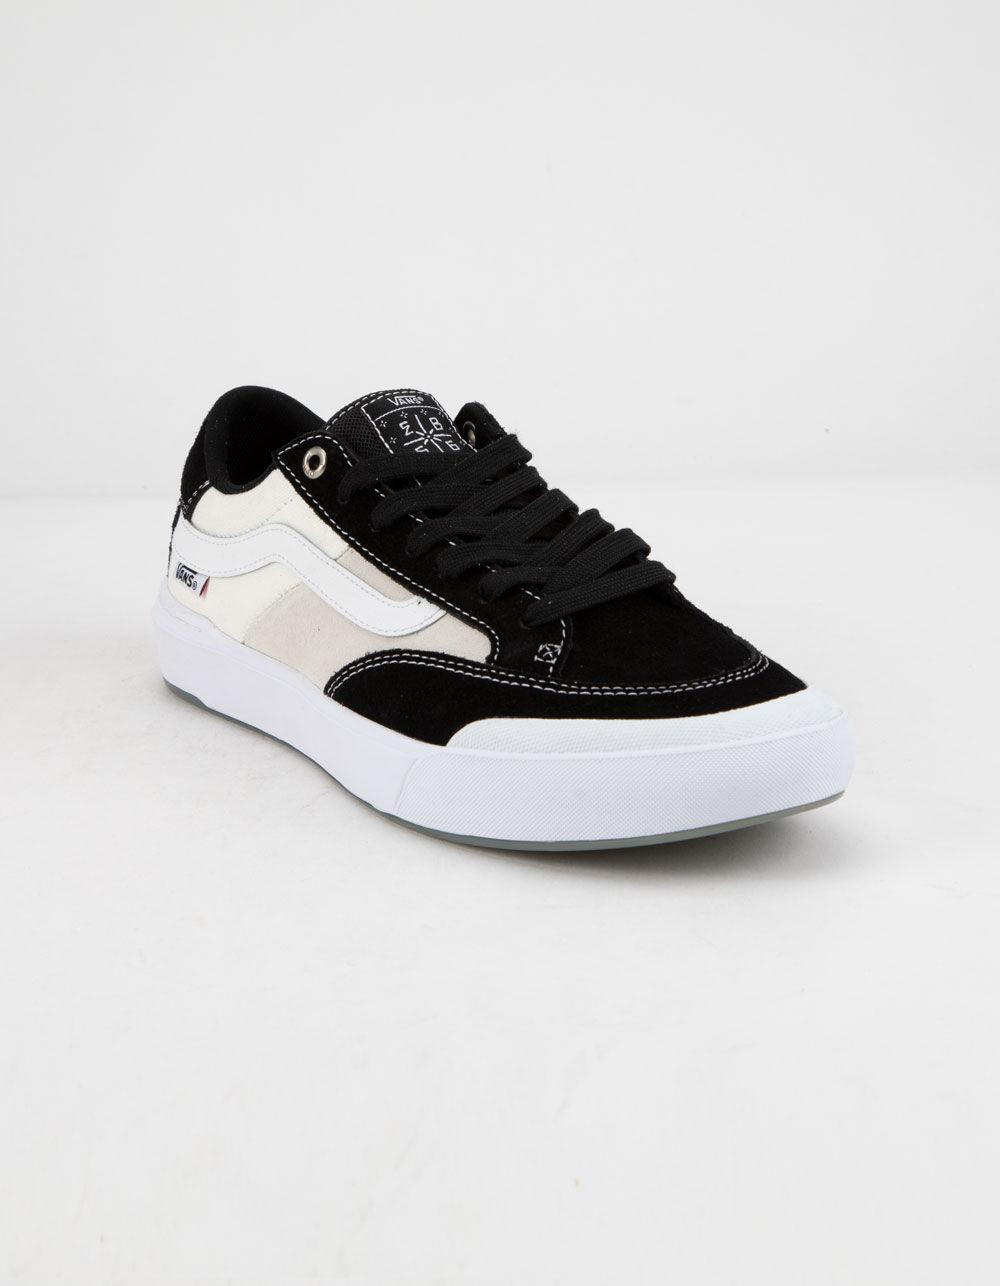 0a672dd153c Lyst - Vans Berle Pro Black   White Mens Shoes in Black for Men